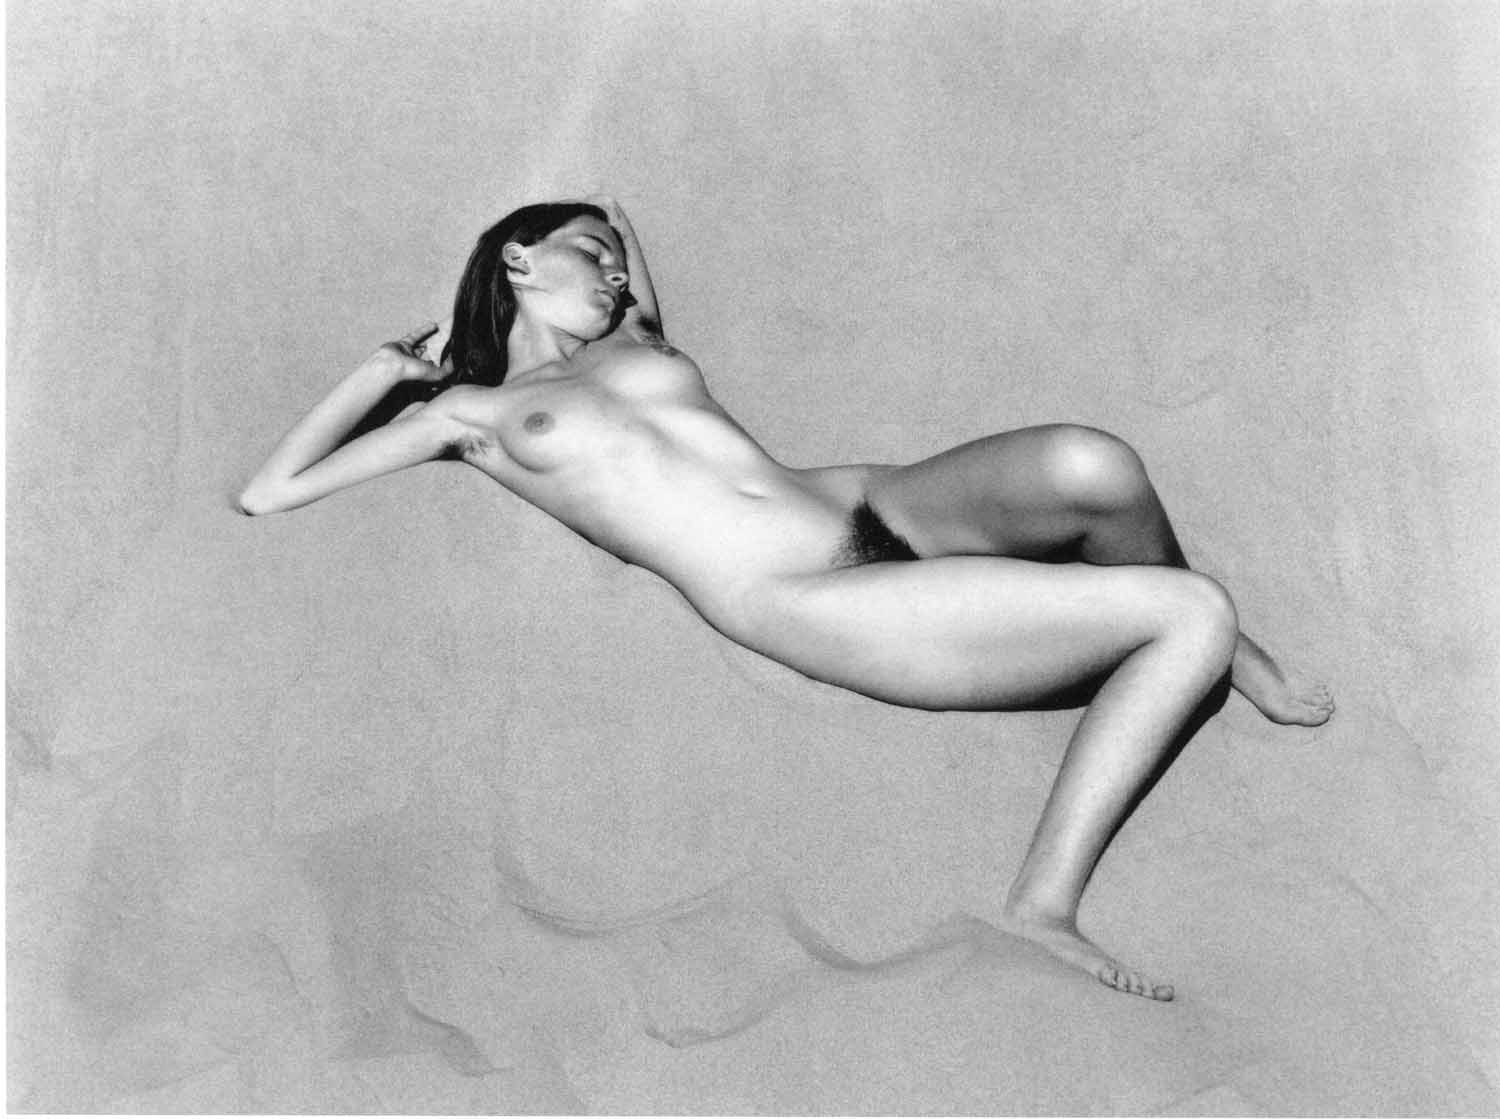 Edward Weston, Nude. Oceano 1936